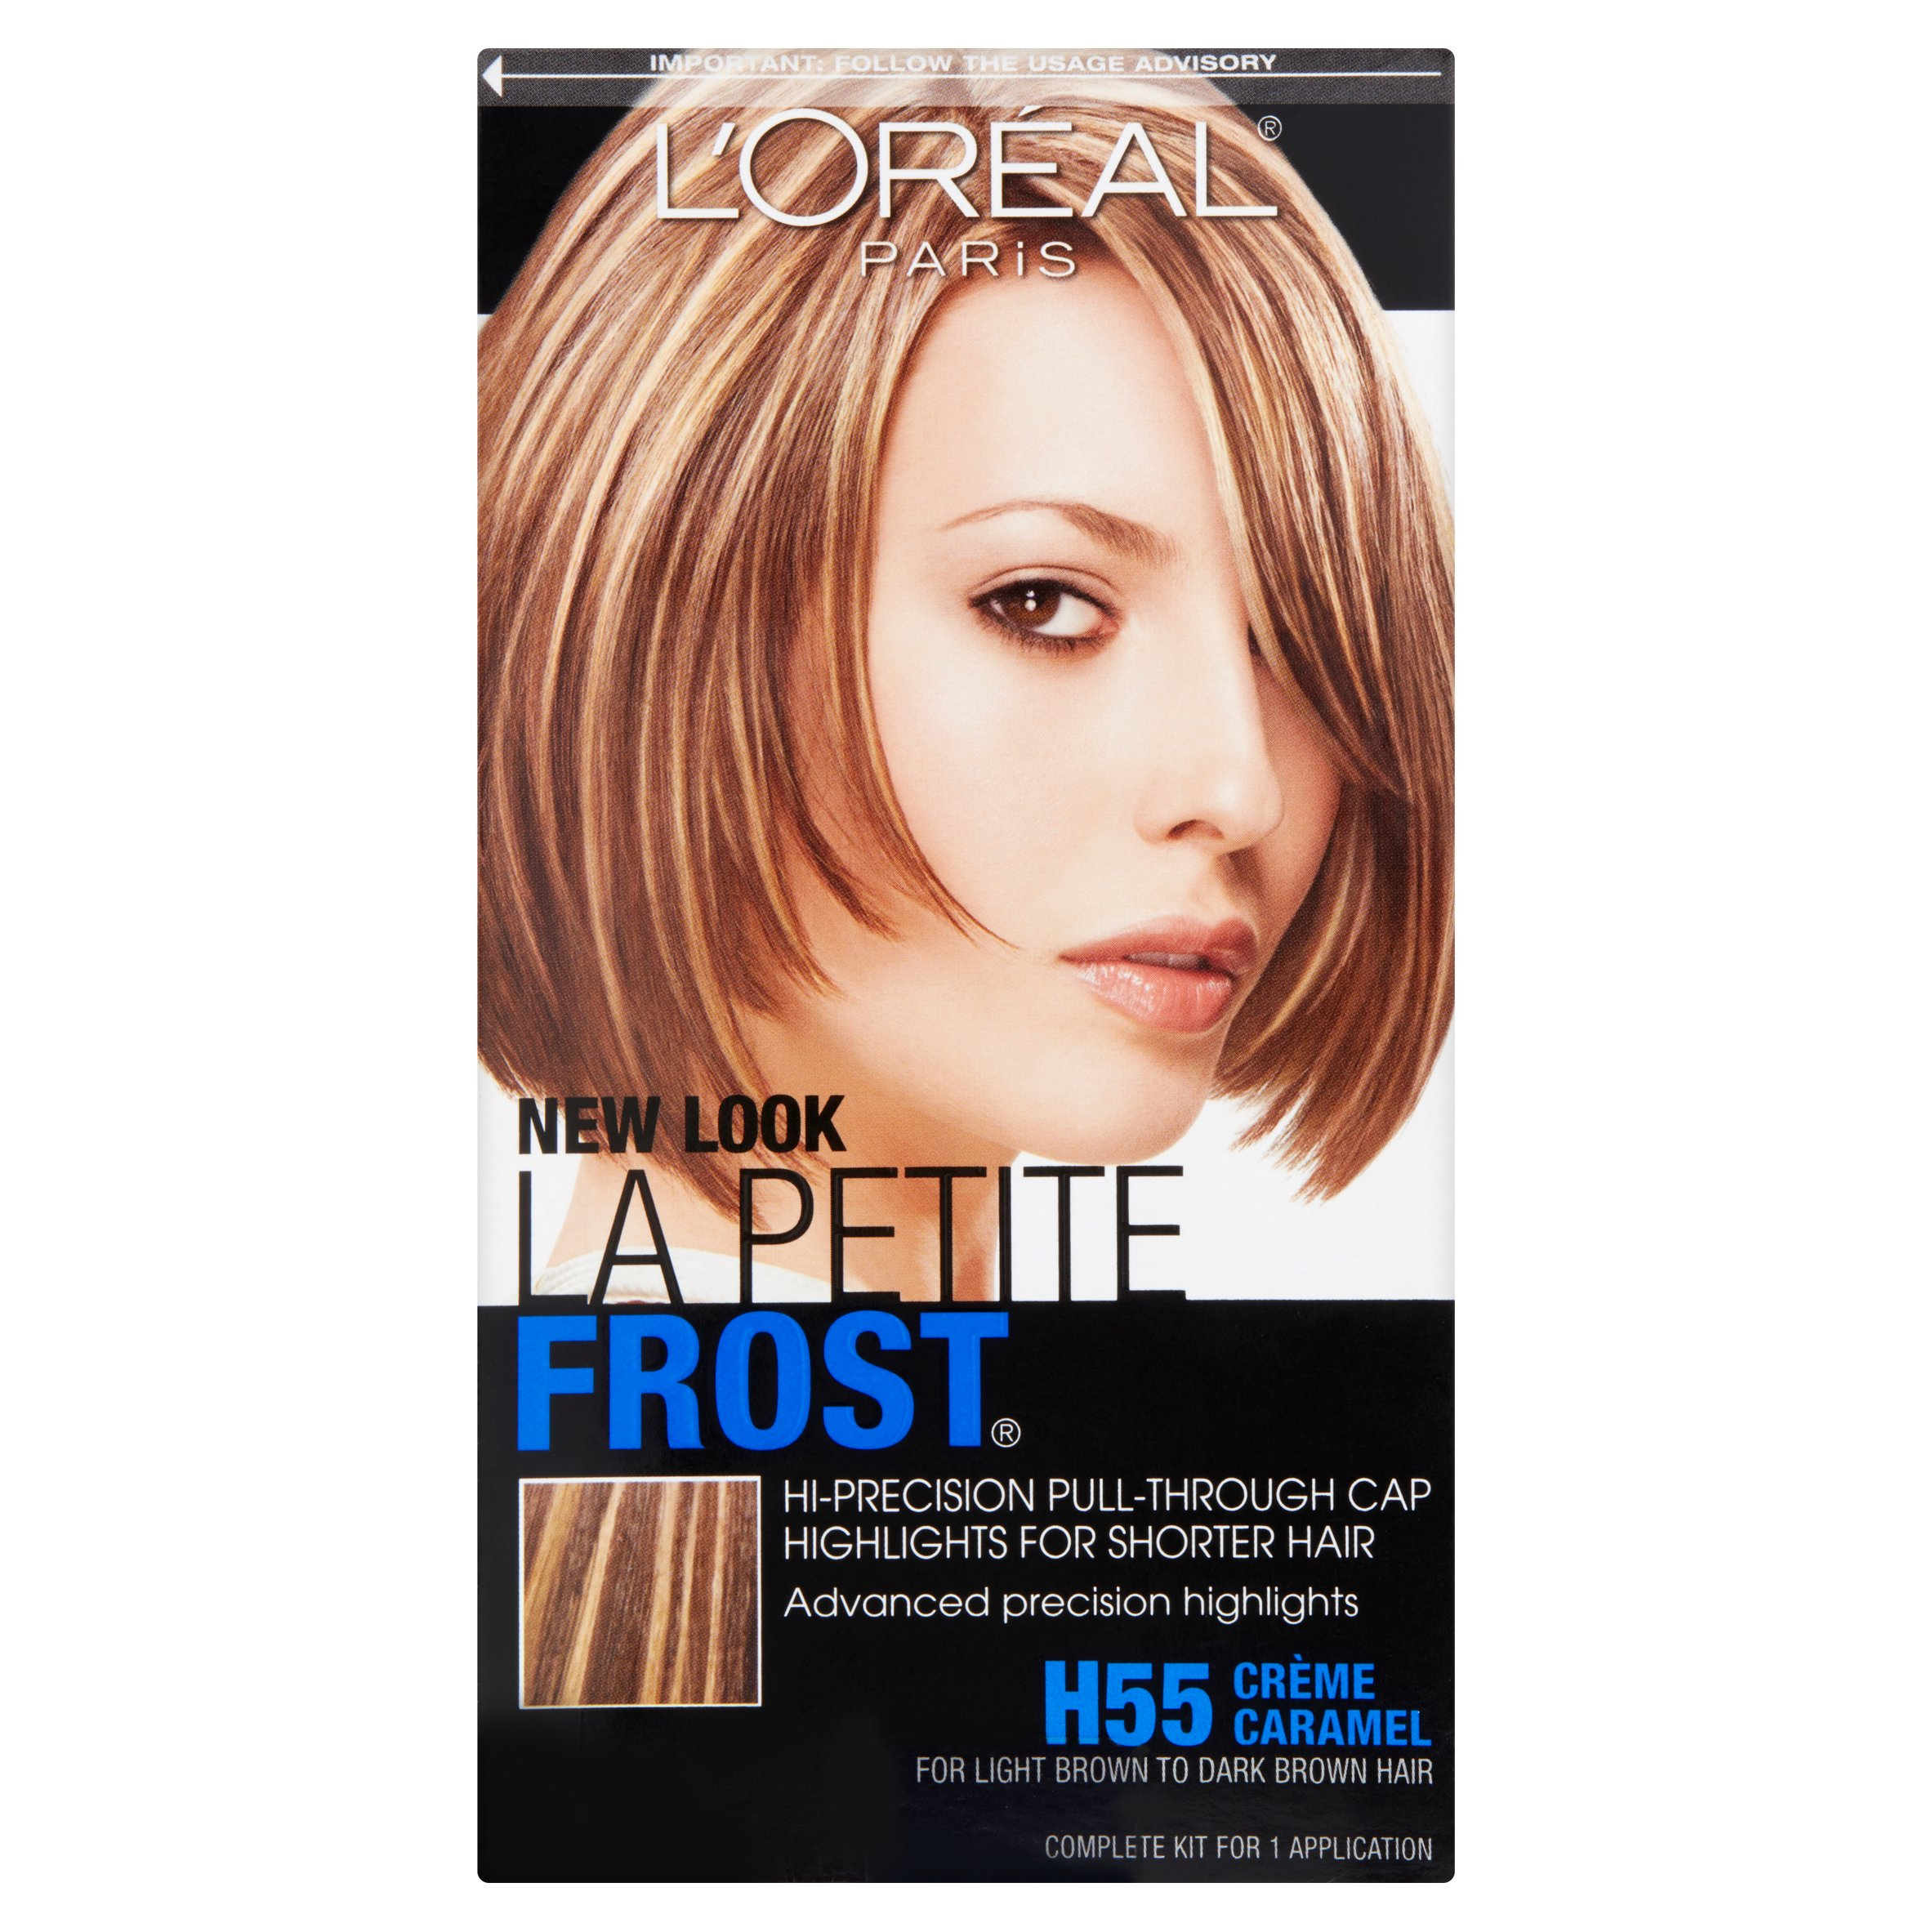 L'Oreal Paris Le Petite Frost Hi - Precision Pull - Through Cap Highlights For Shorter Hair